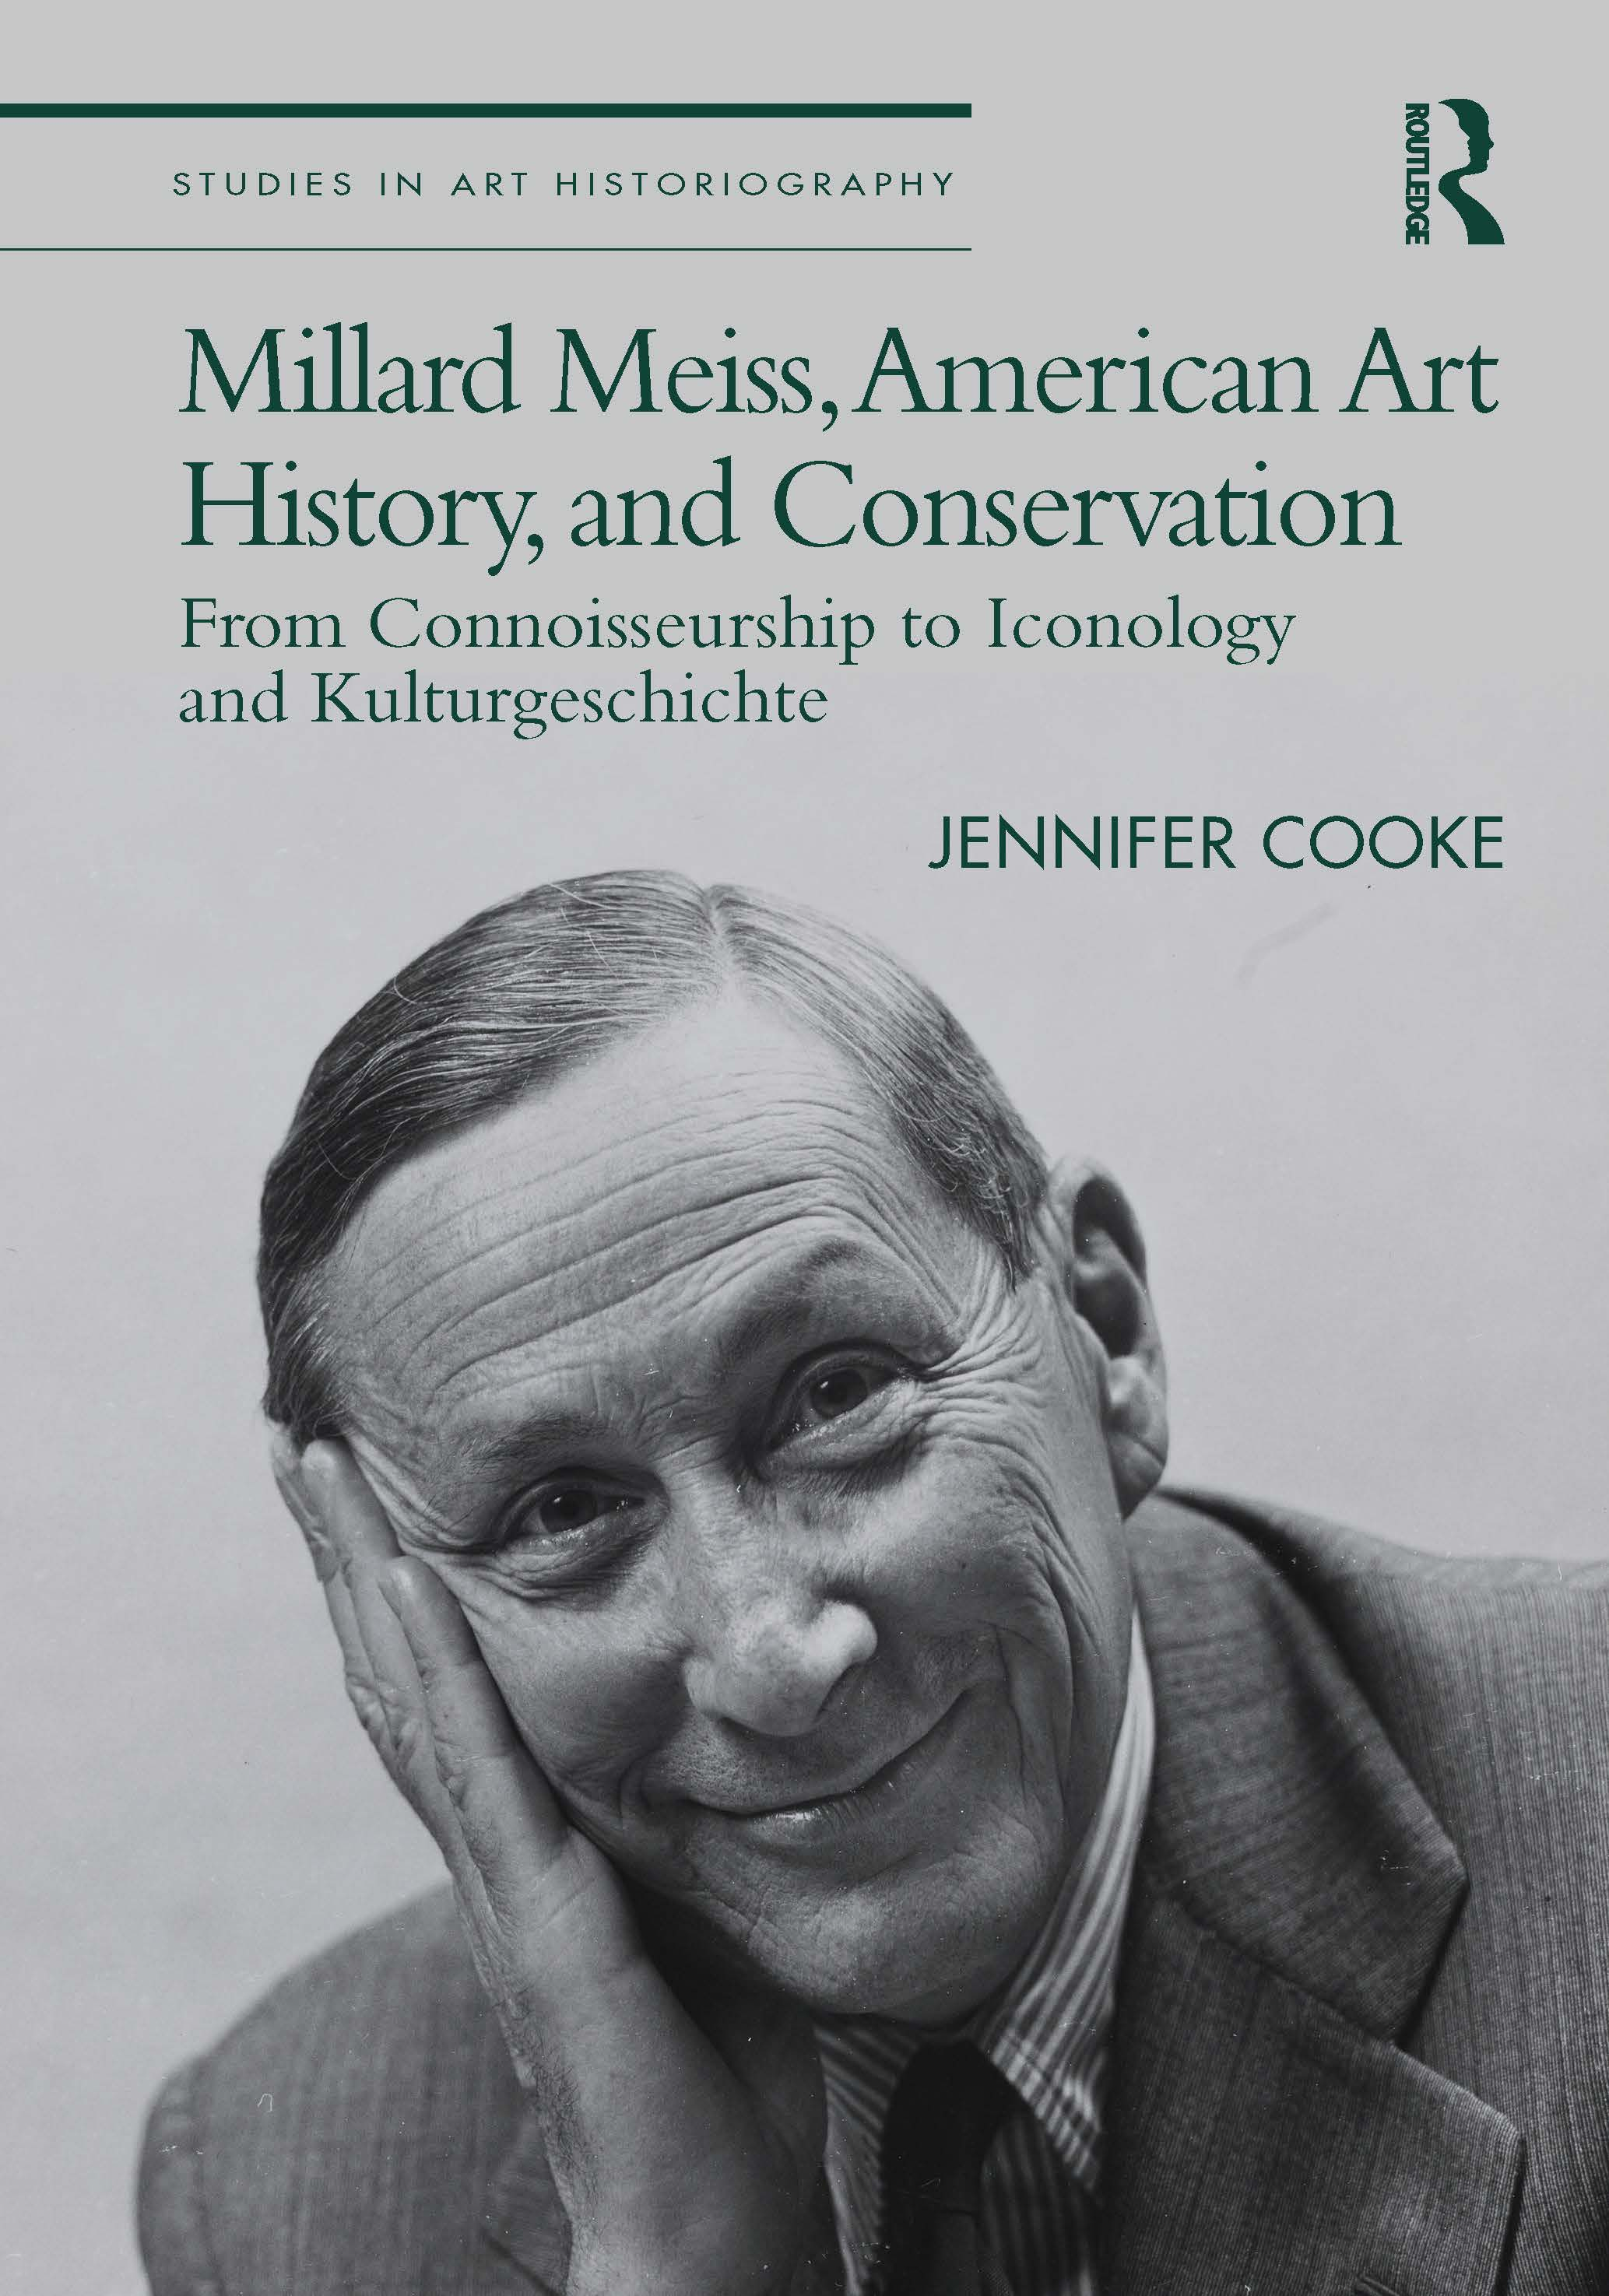 Millard Meiss, American Art History, and Conservation